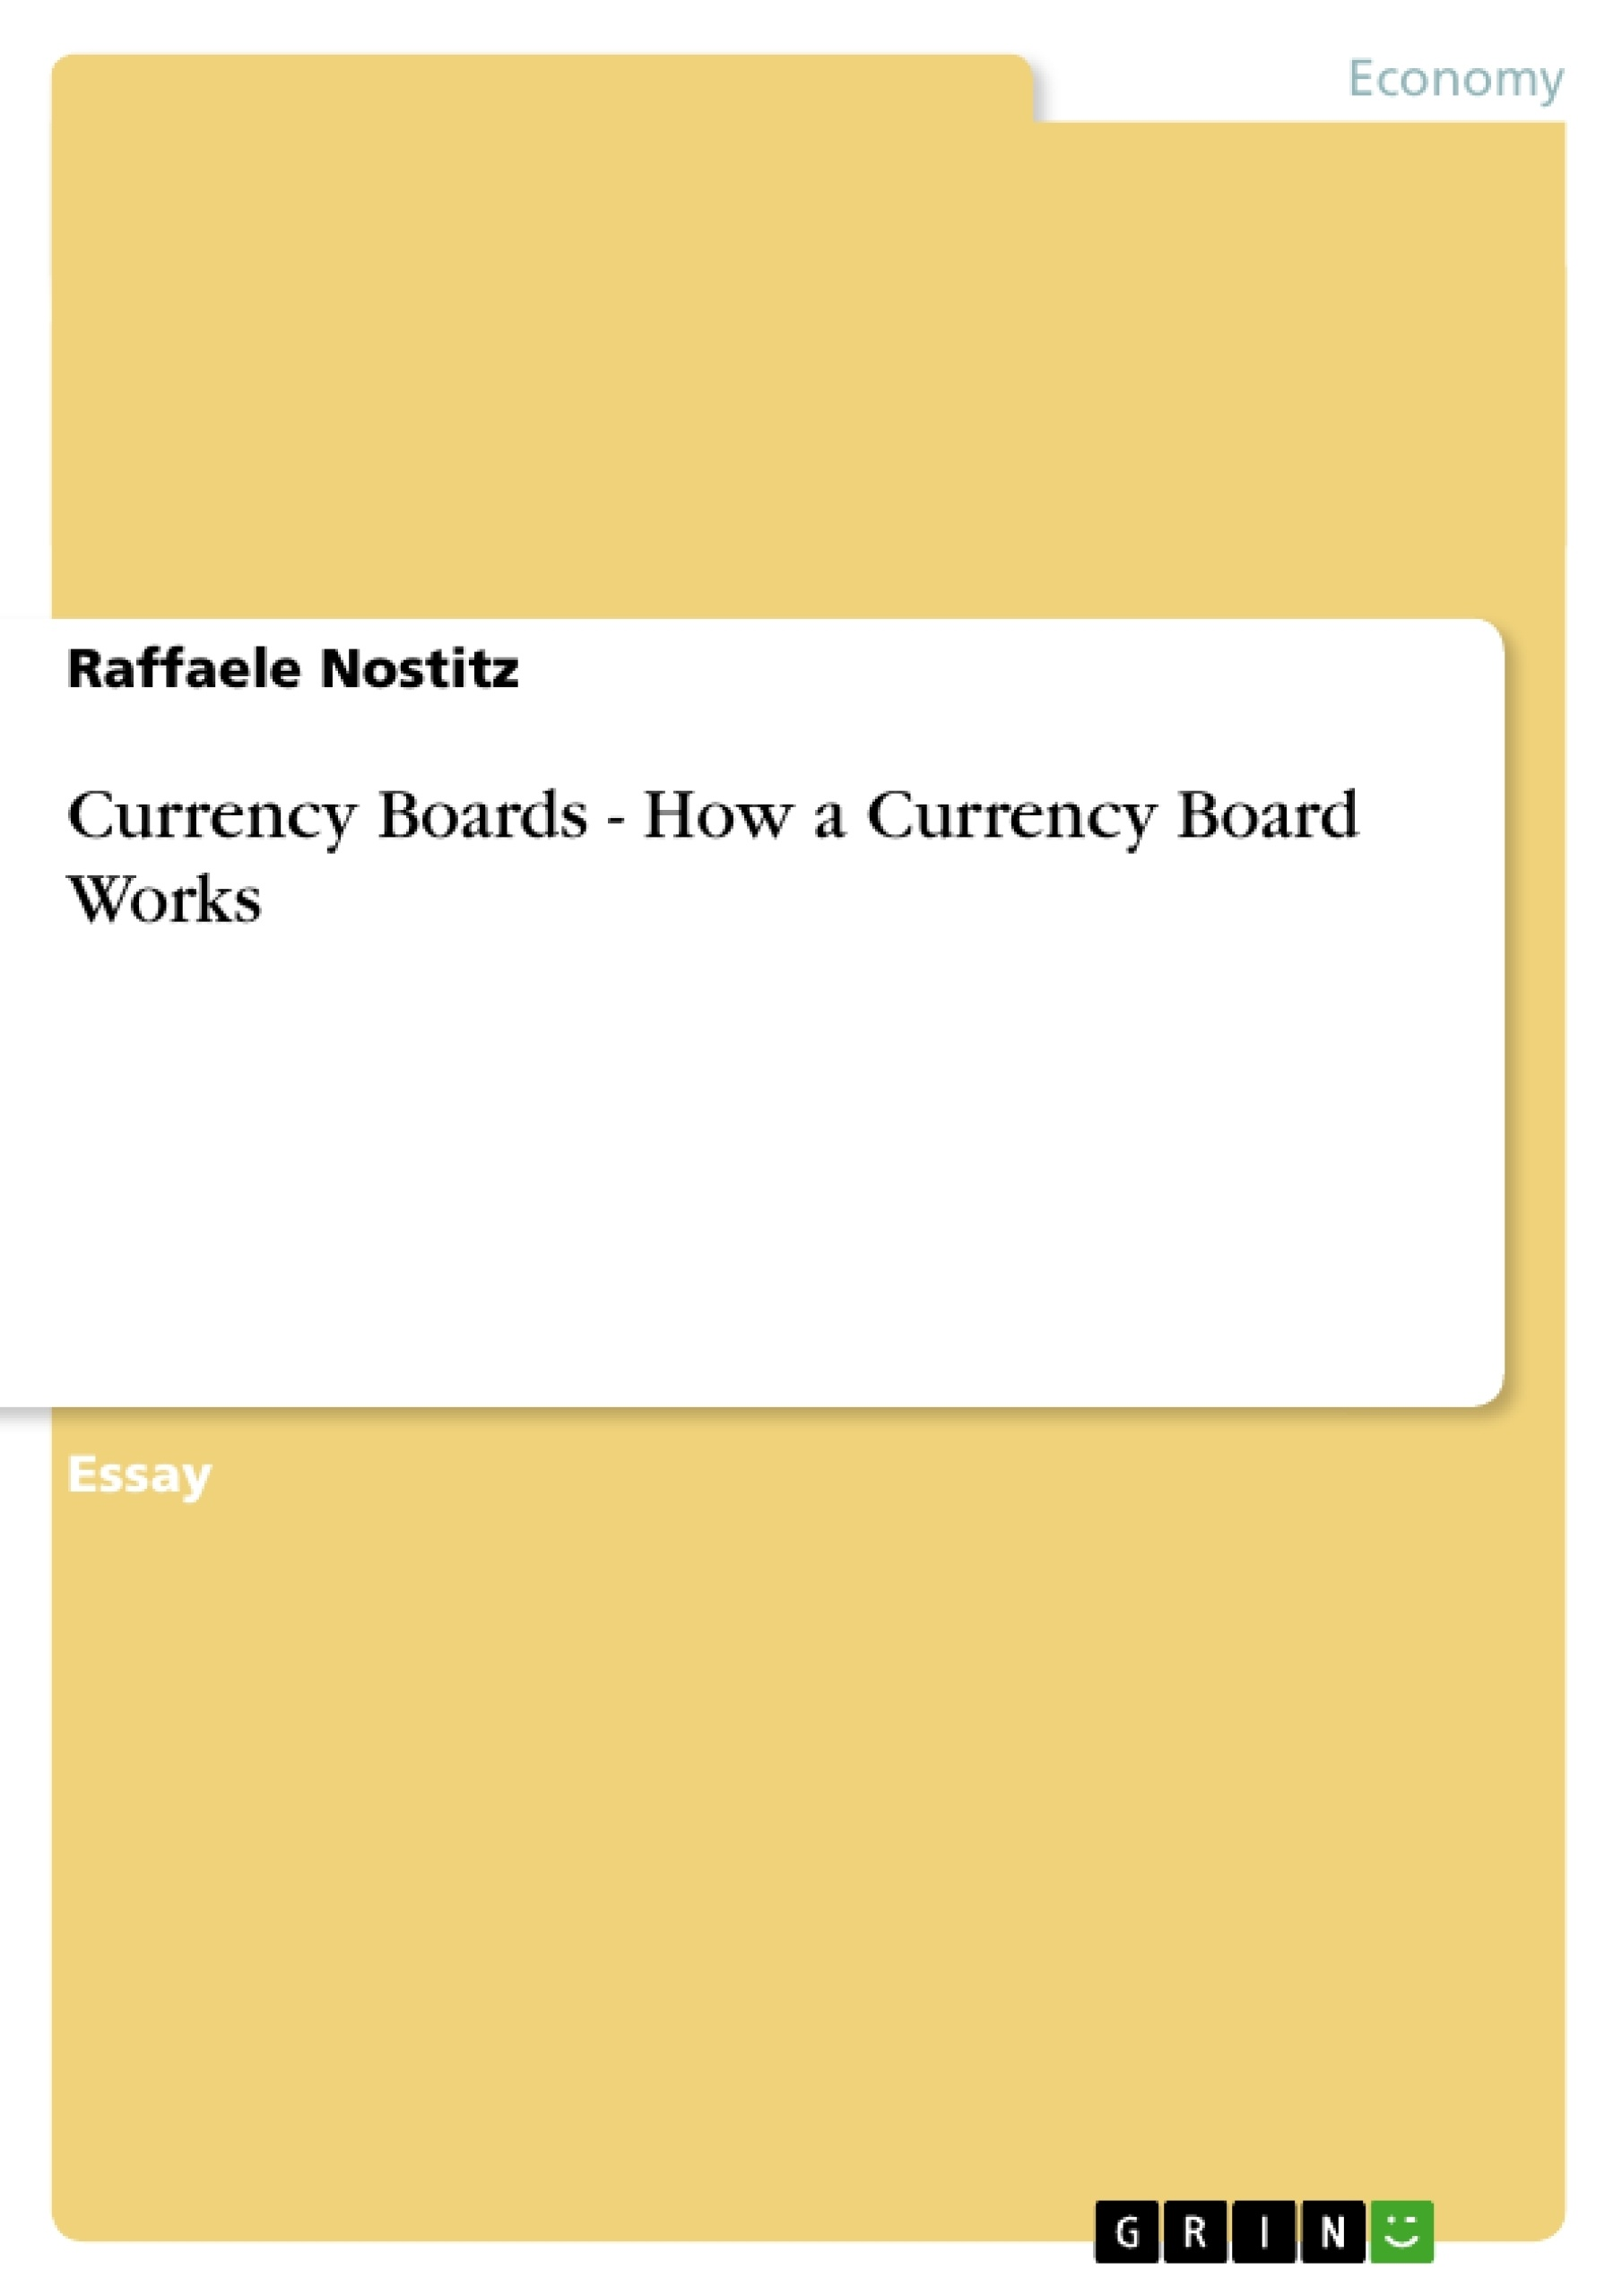 Title: Currency Boards - How a Currency Board Works